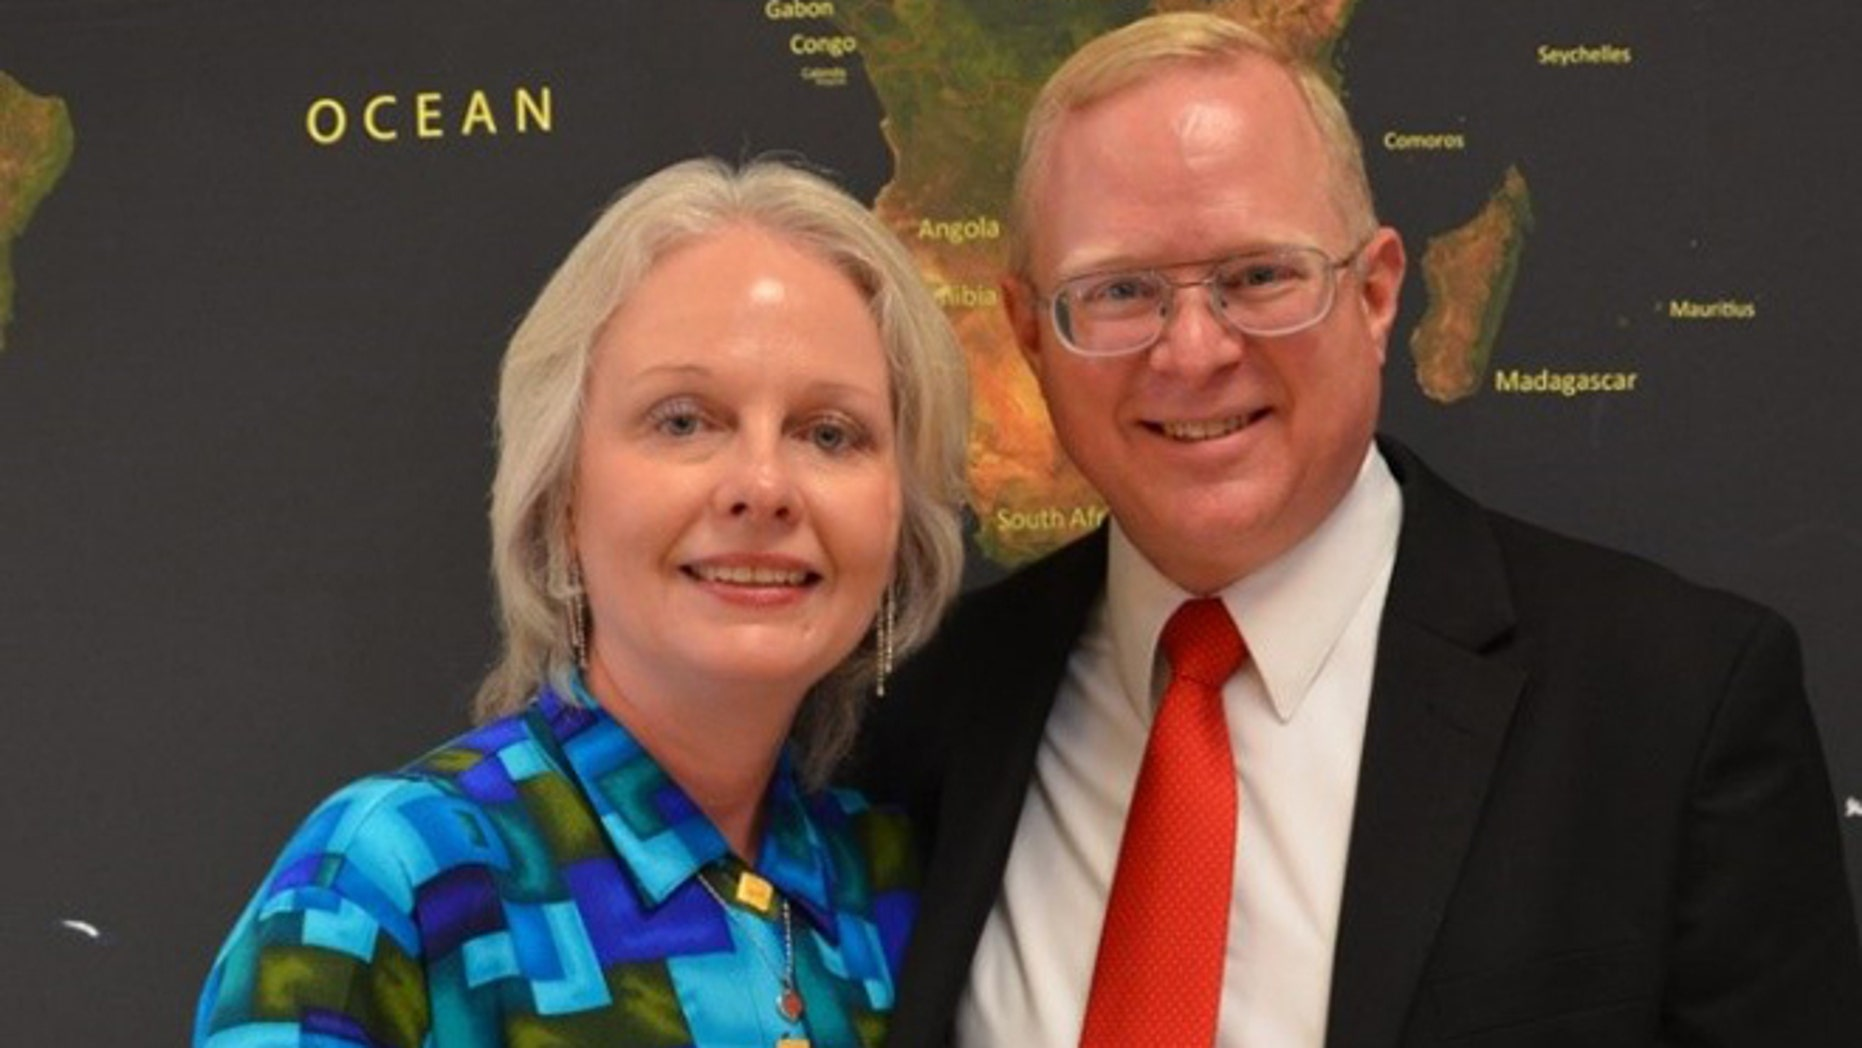 Christian pastor Donald Ossewaarde, seen here with his wife Ruth, was one of the first American citizens to be charged under anti-religious provisions of Russia's new anti-terror laws.